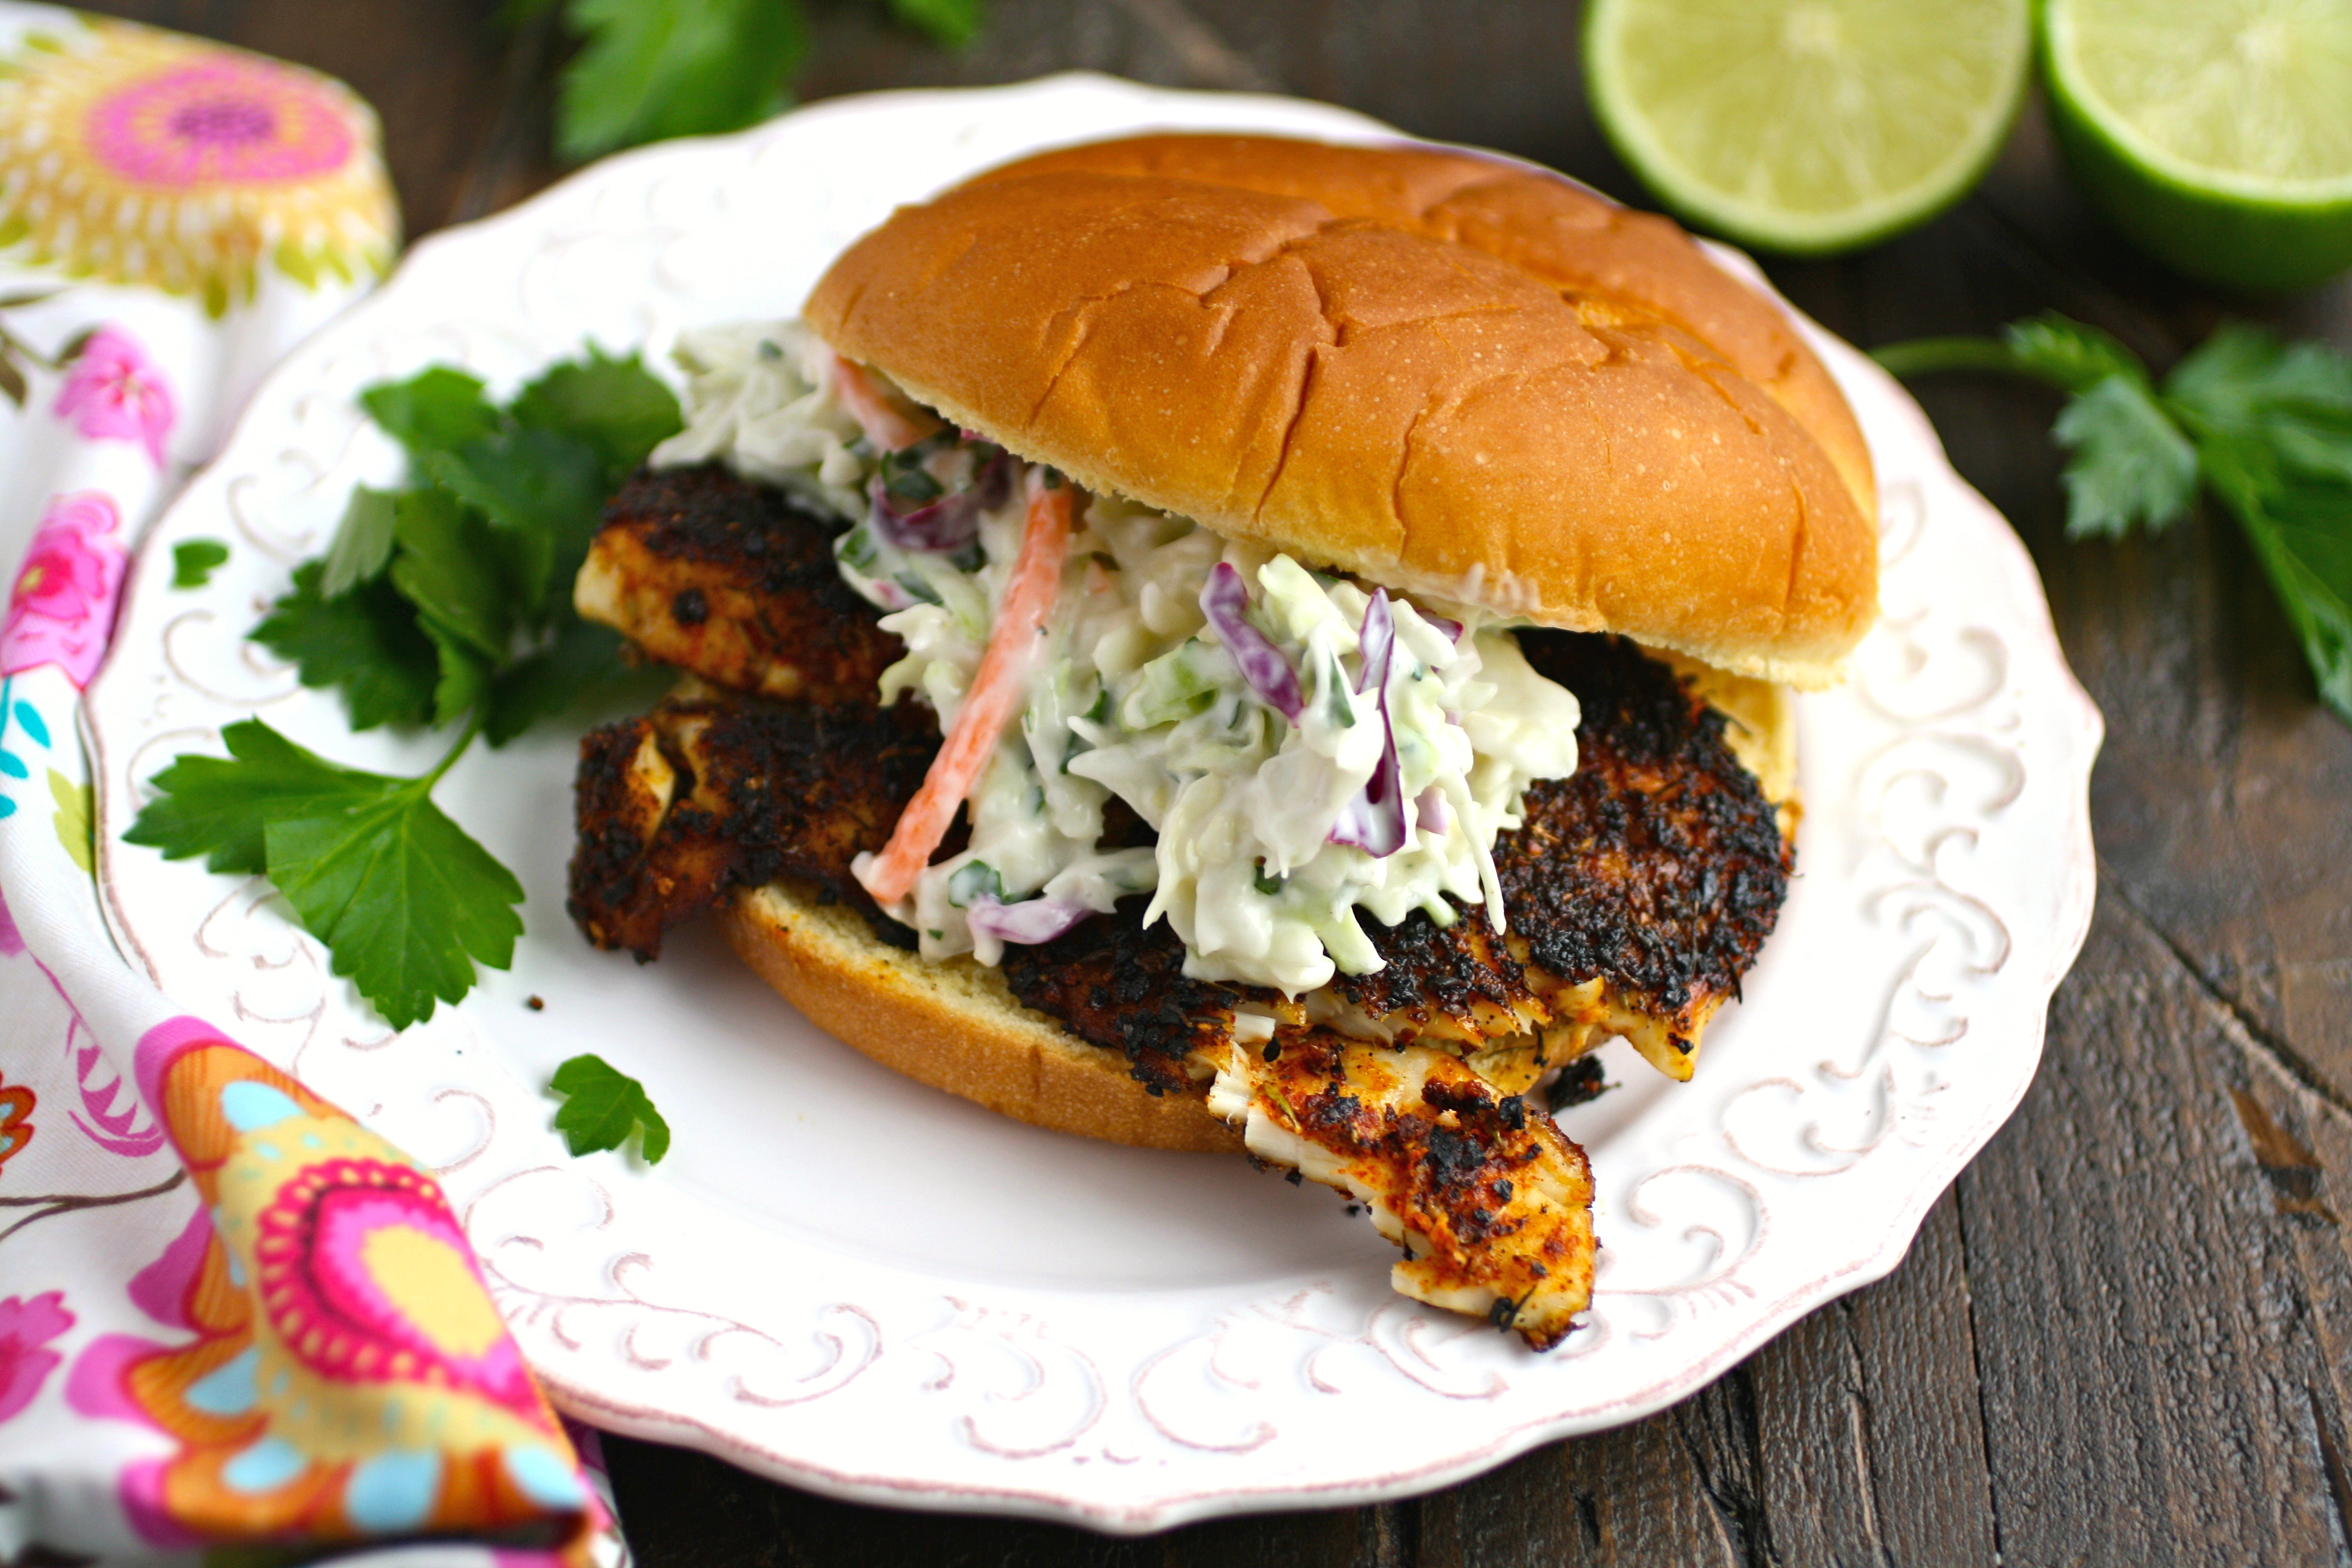 Blackened fish sandwiches with cilantro slaw is quite a catch for dinner!